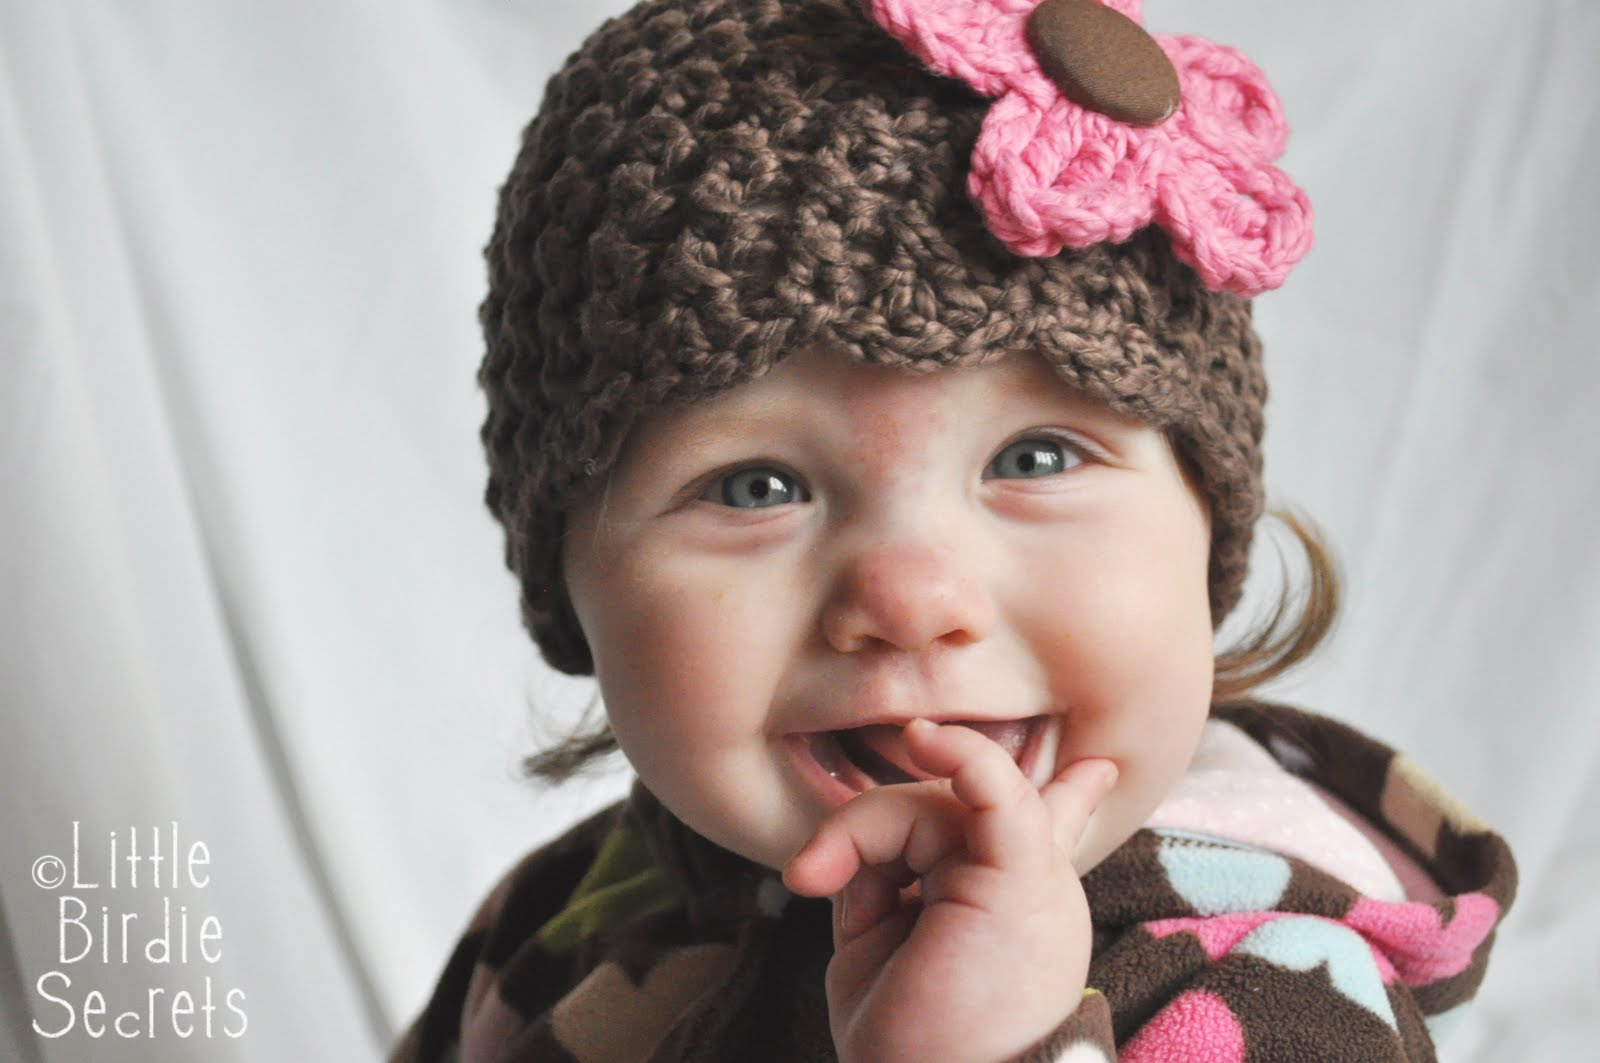 Free Crochet Flower Patterns For Baby Hats : CROCHETED BEANIE HAT PATTERN - Crochet Club